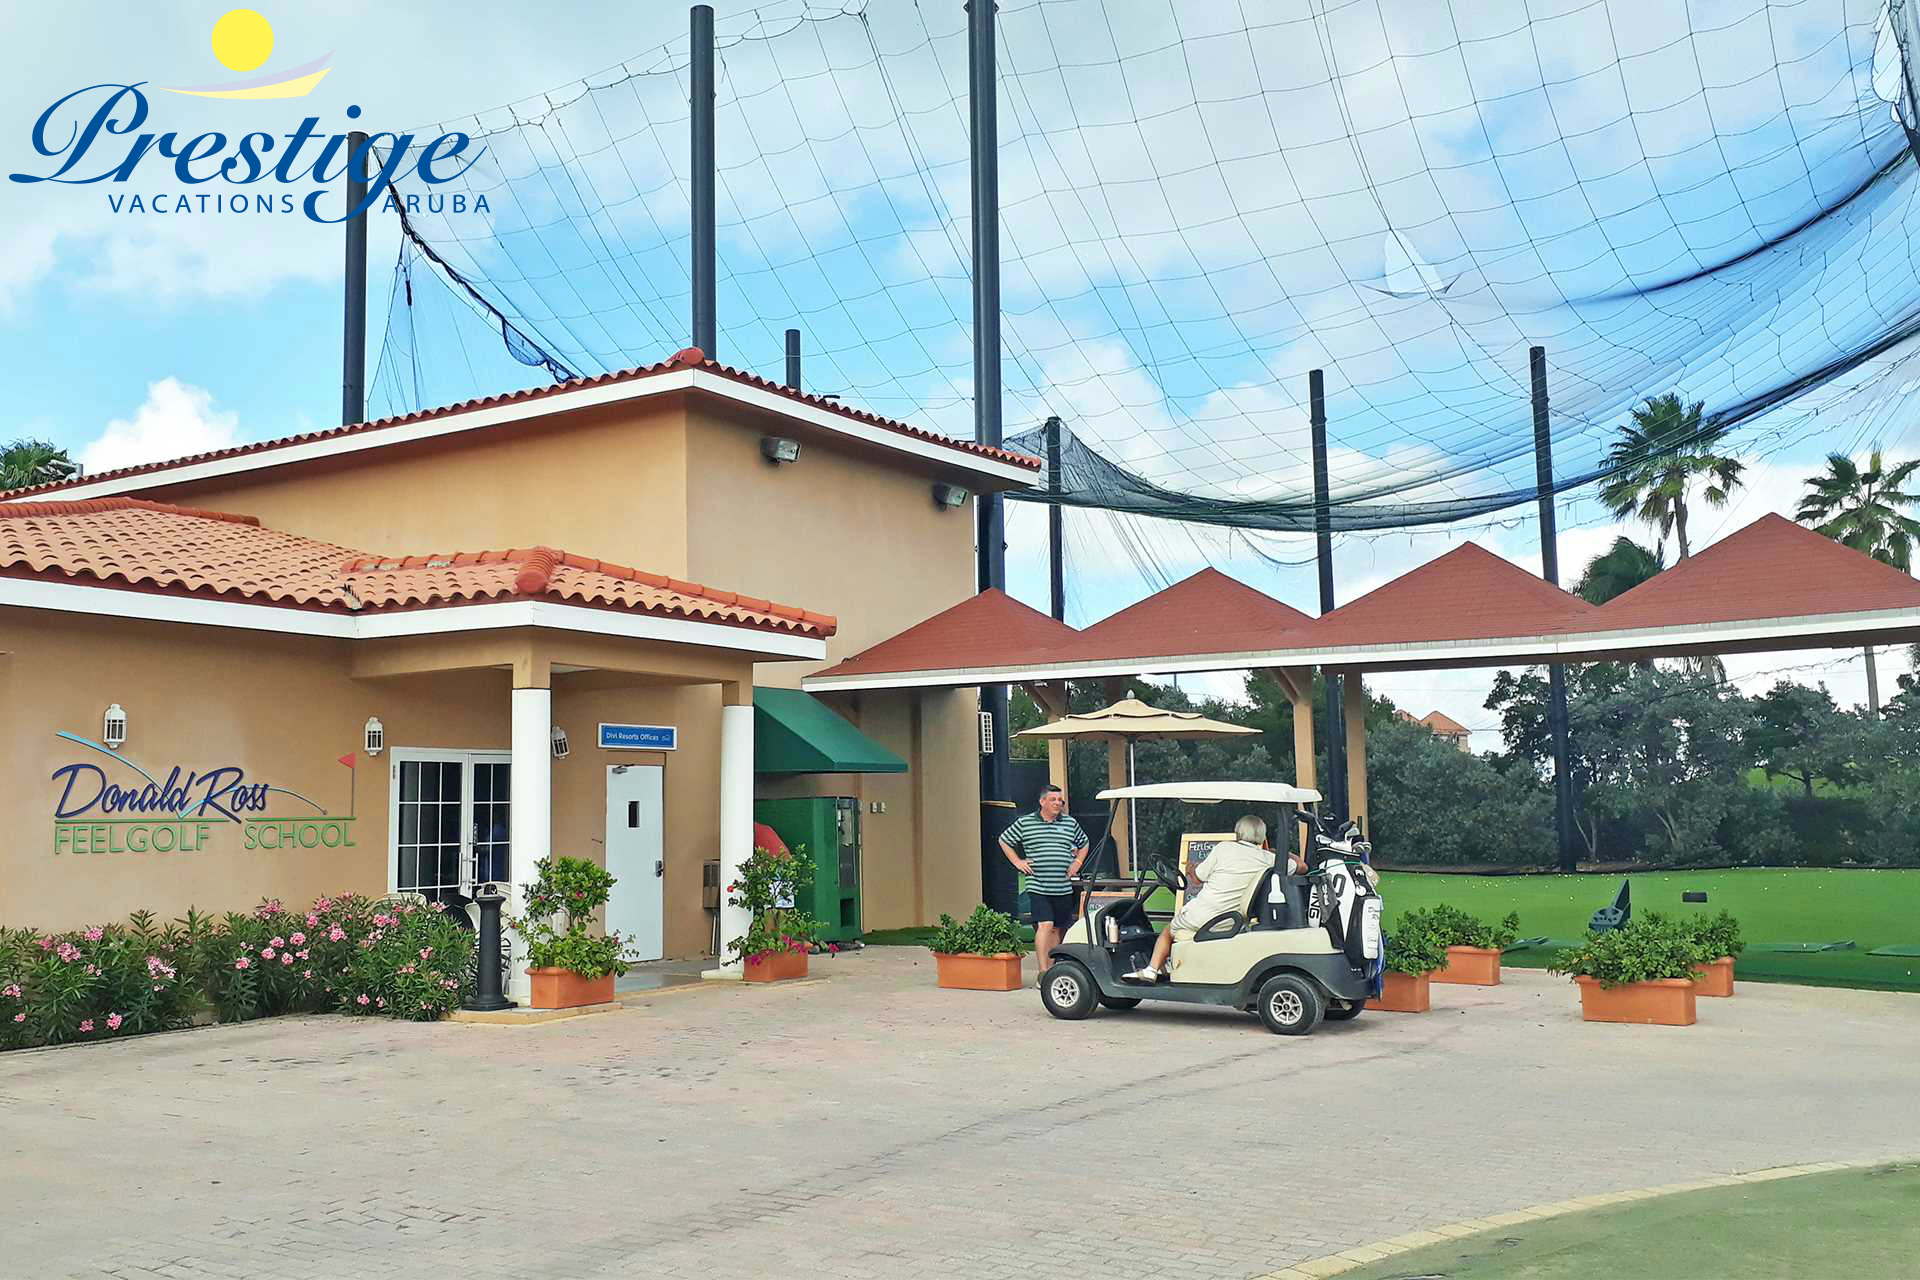 It offers a Golf Training facility with professional golf instructors for both individuals and groups